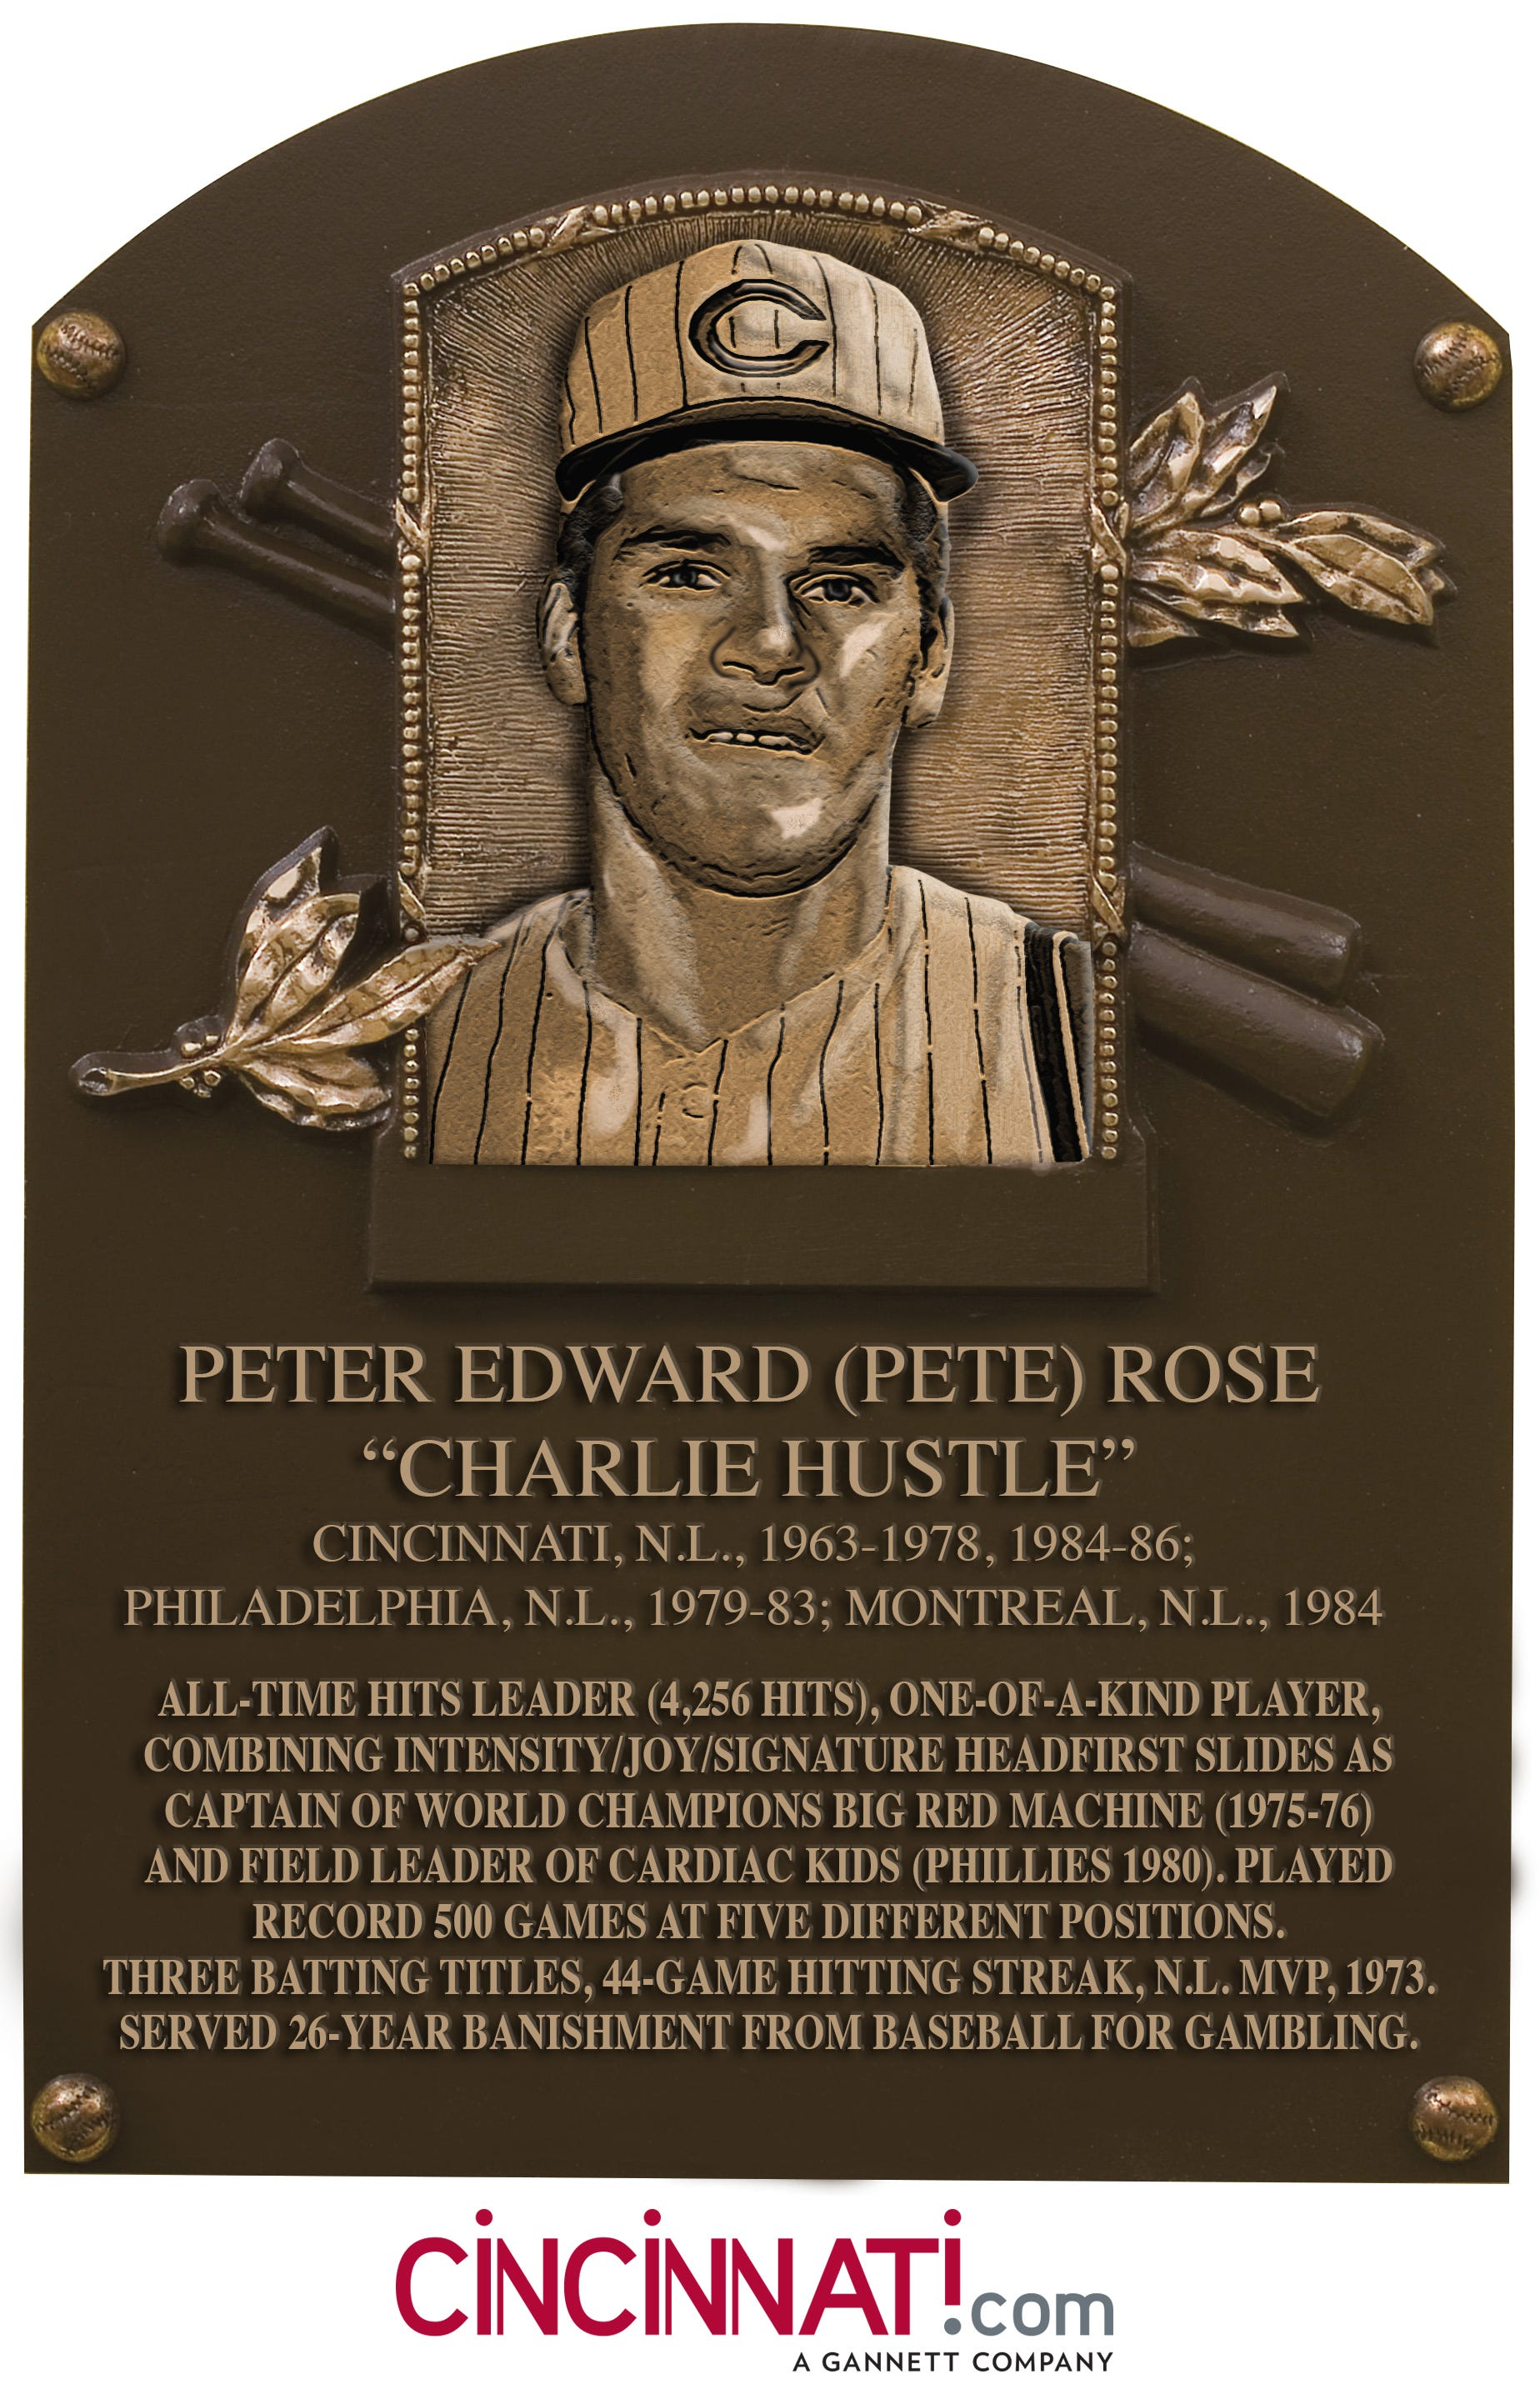 is pete rose in the hall of fame